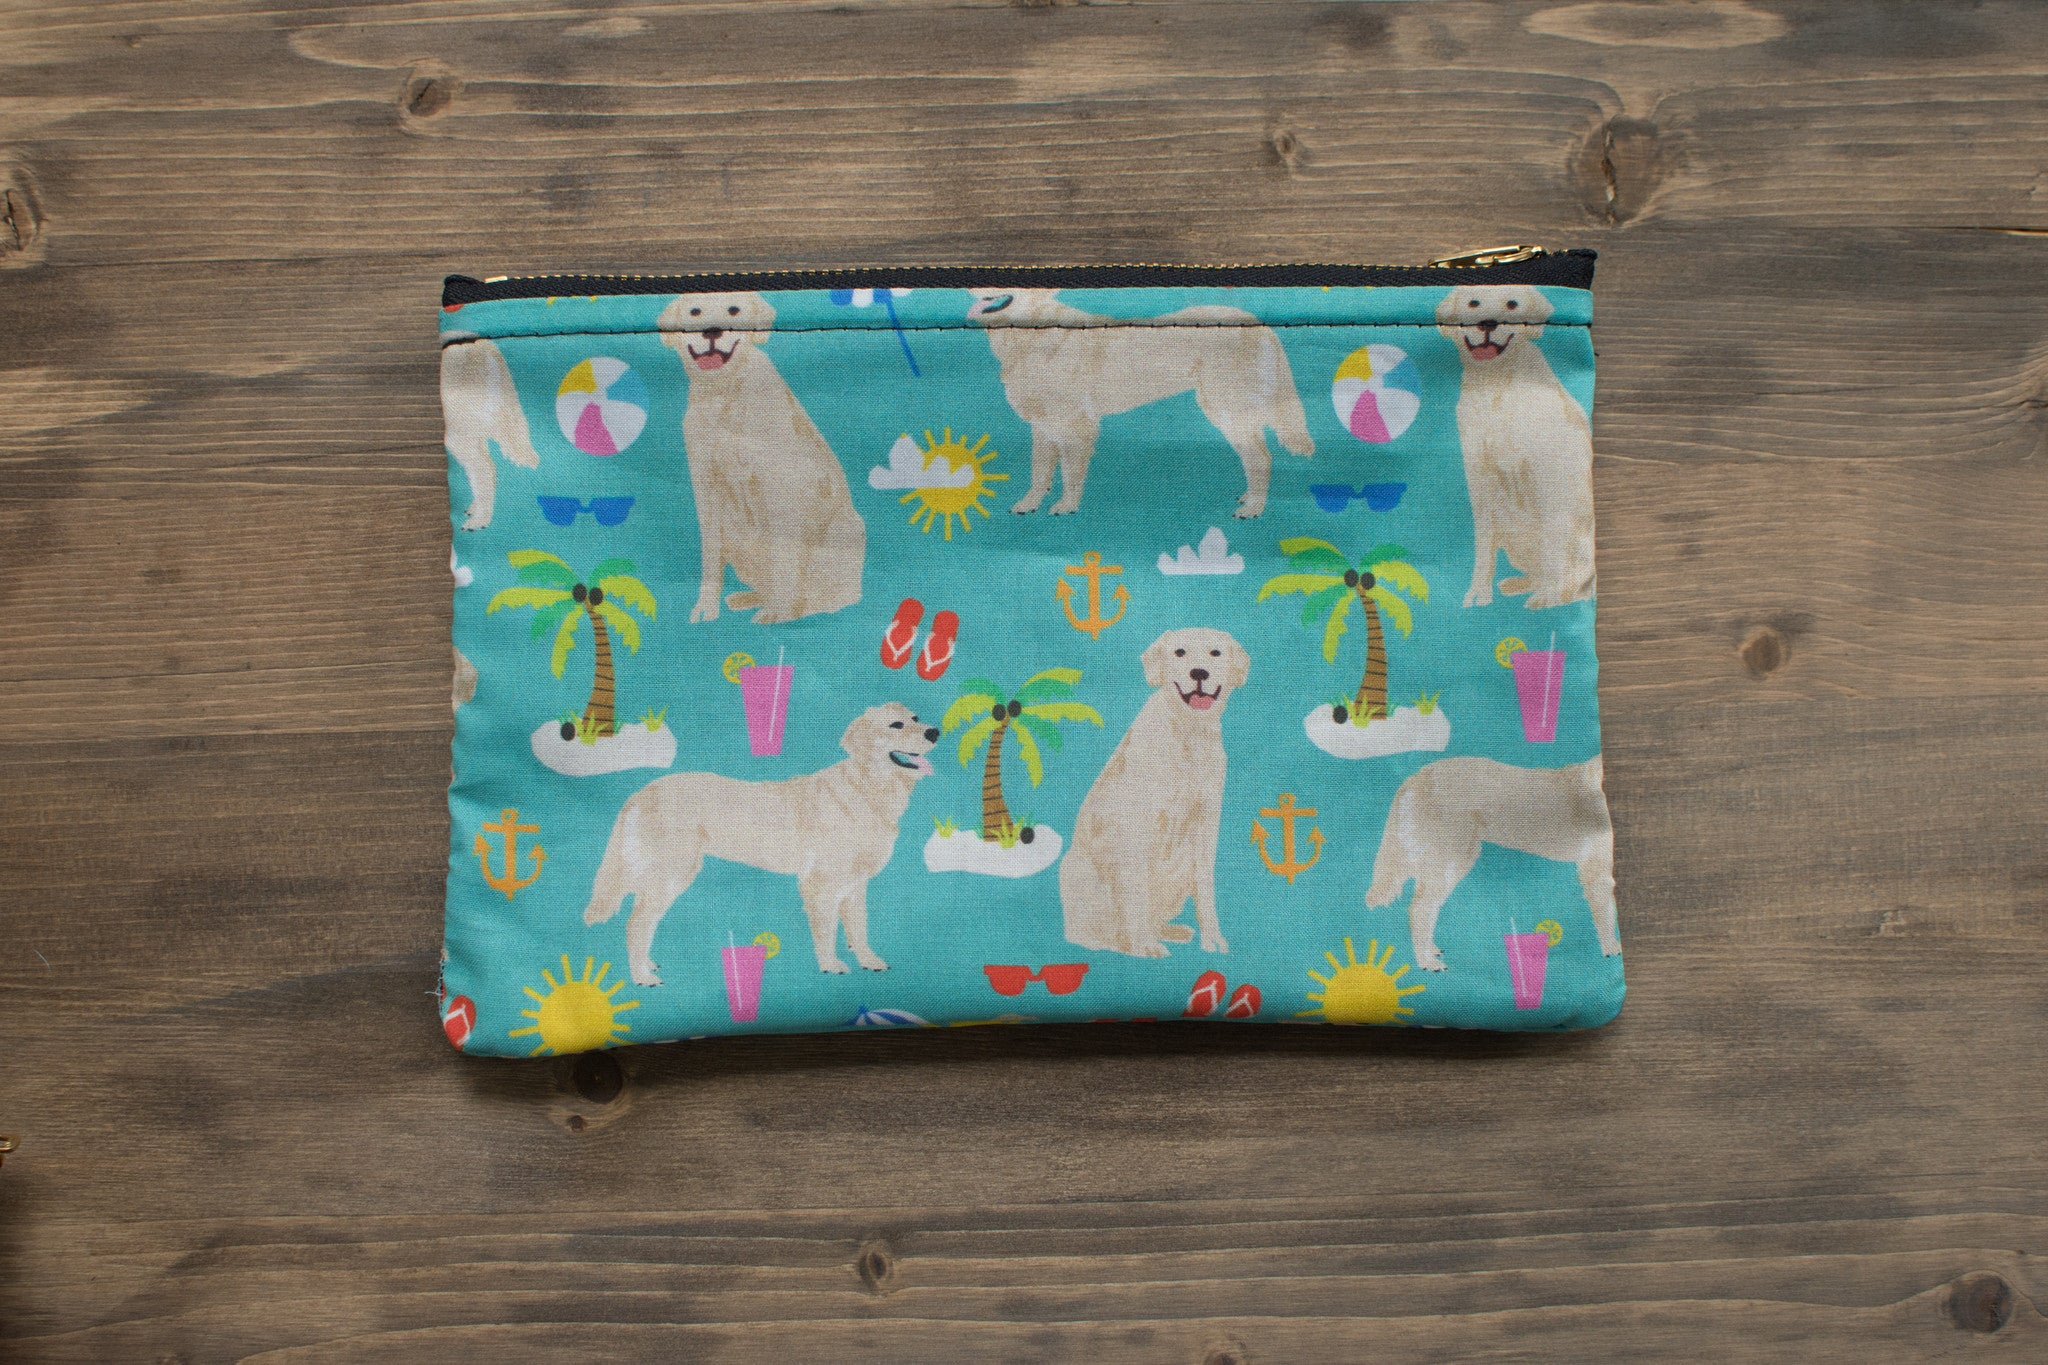 Golden Retriever + Beach Zipper Pouch